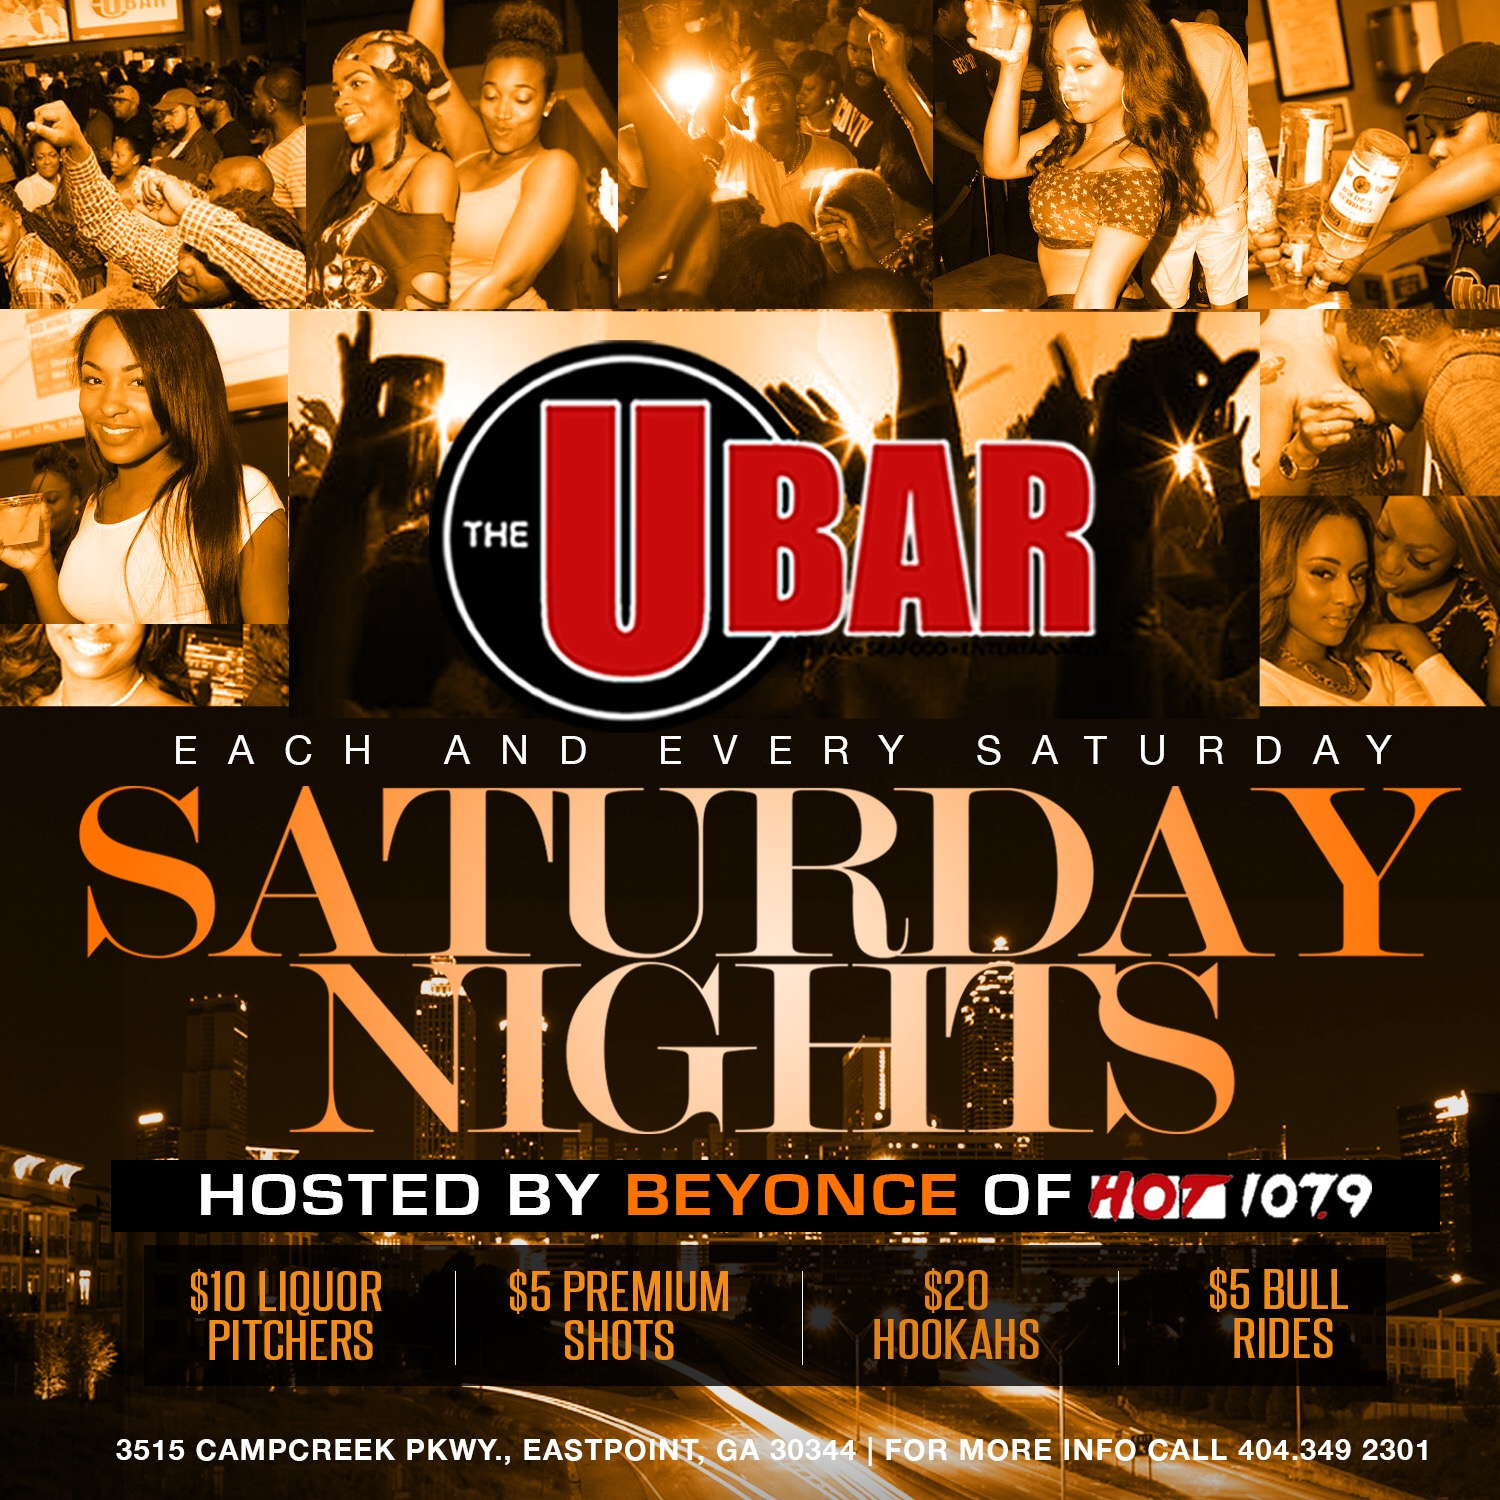 The Ubar: Saturday Nights